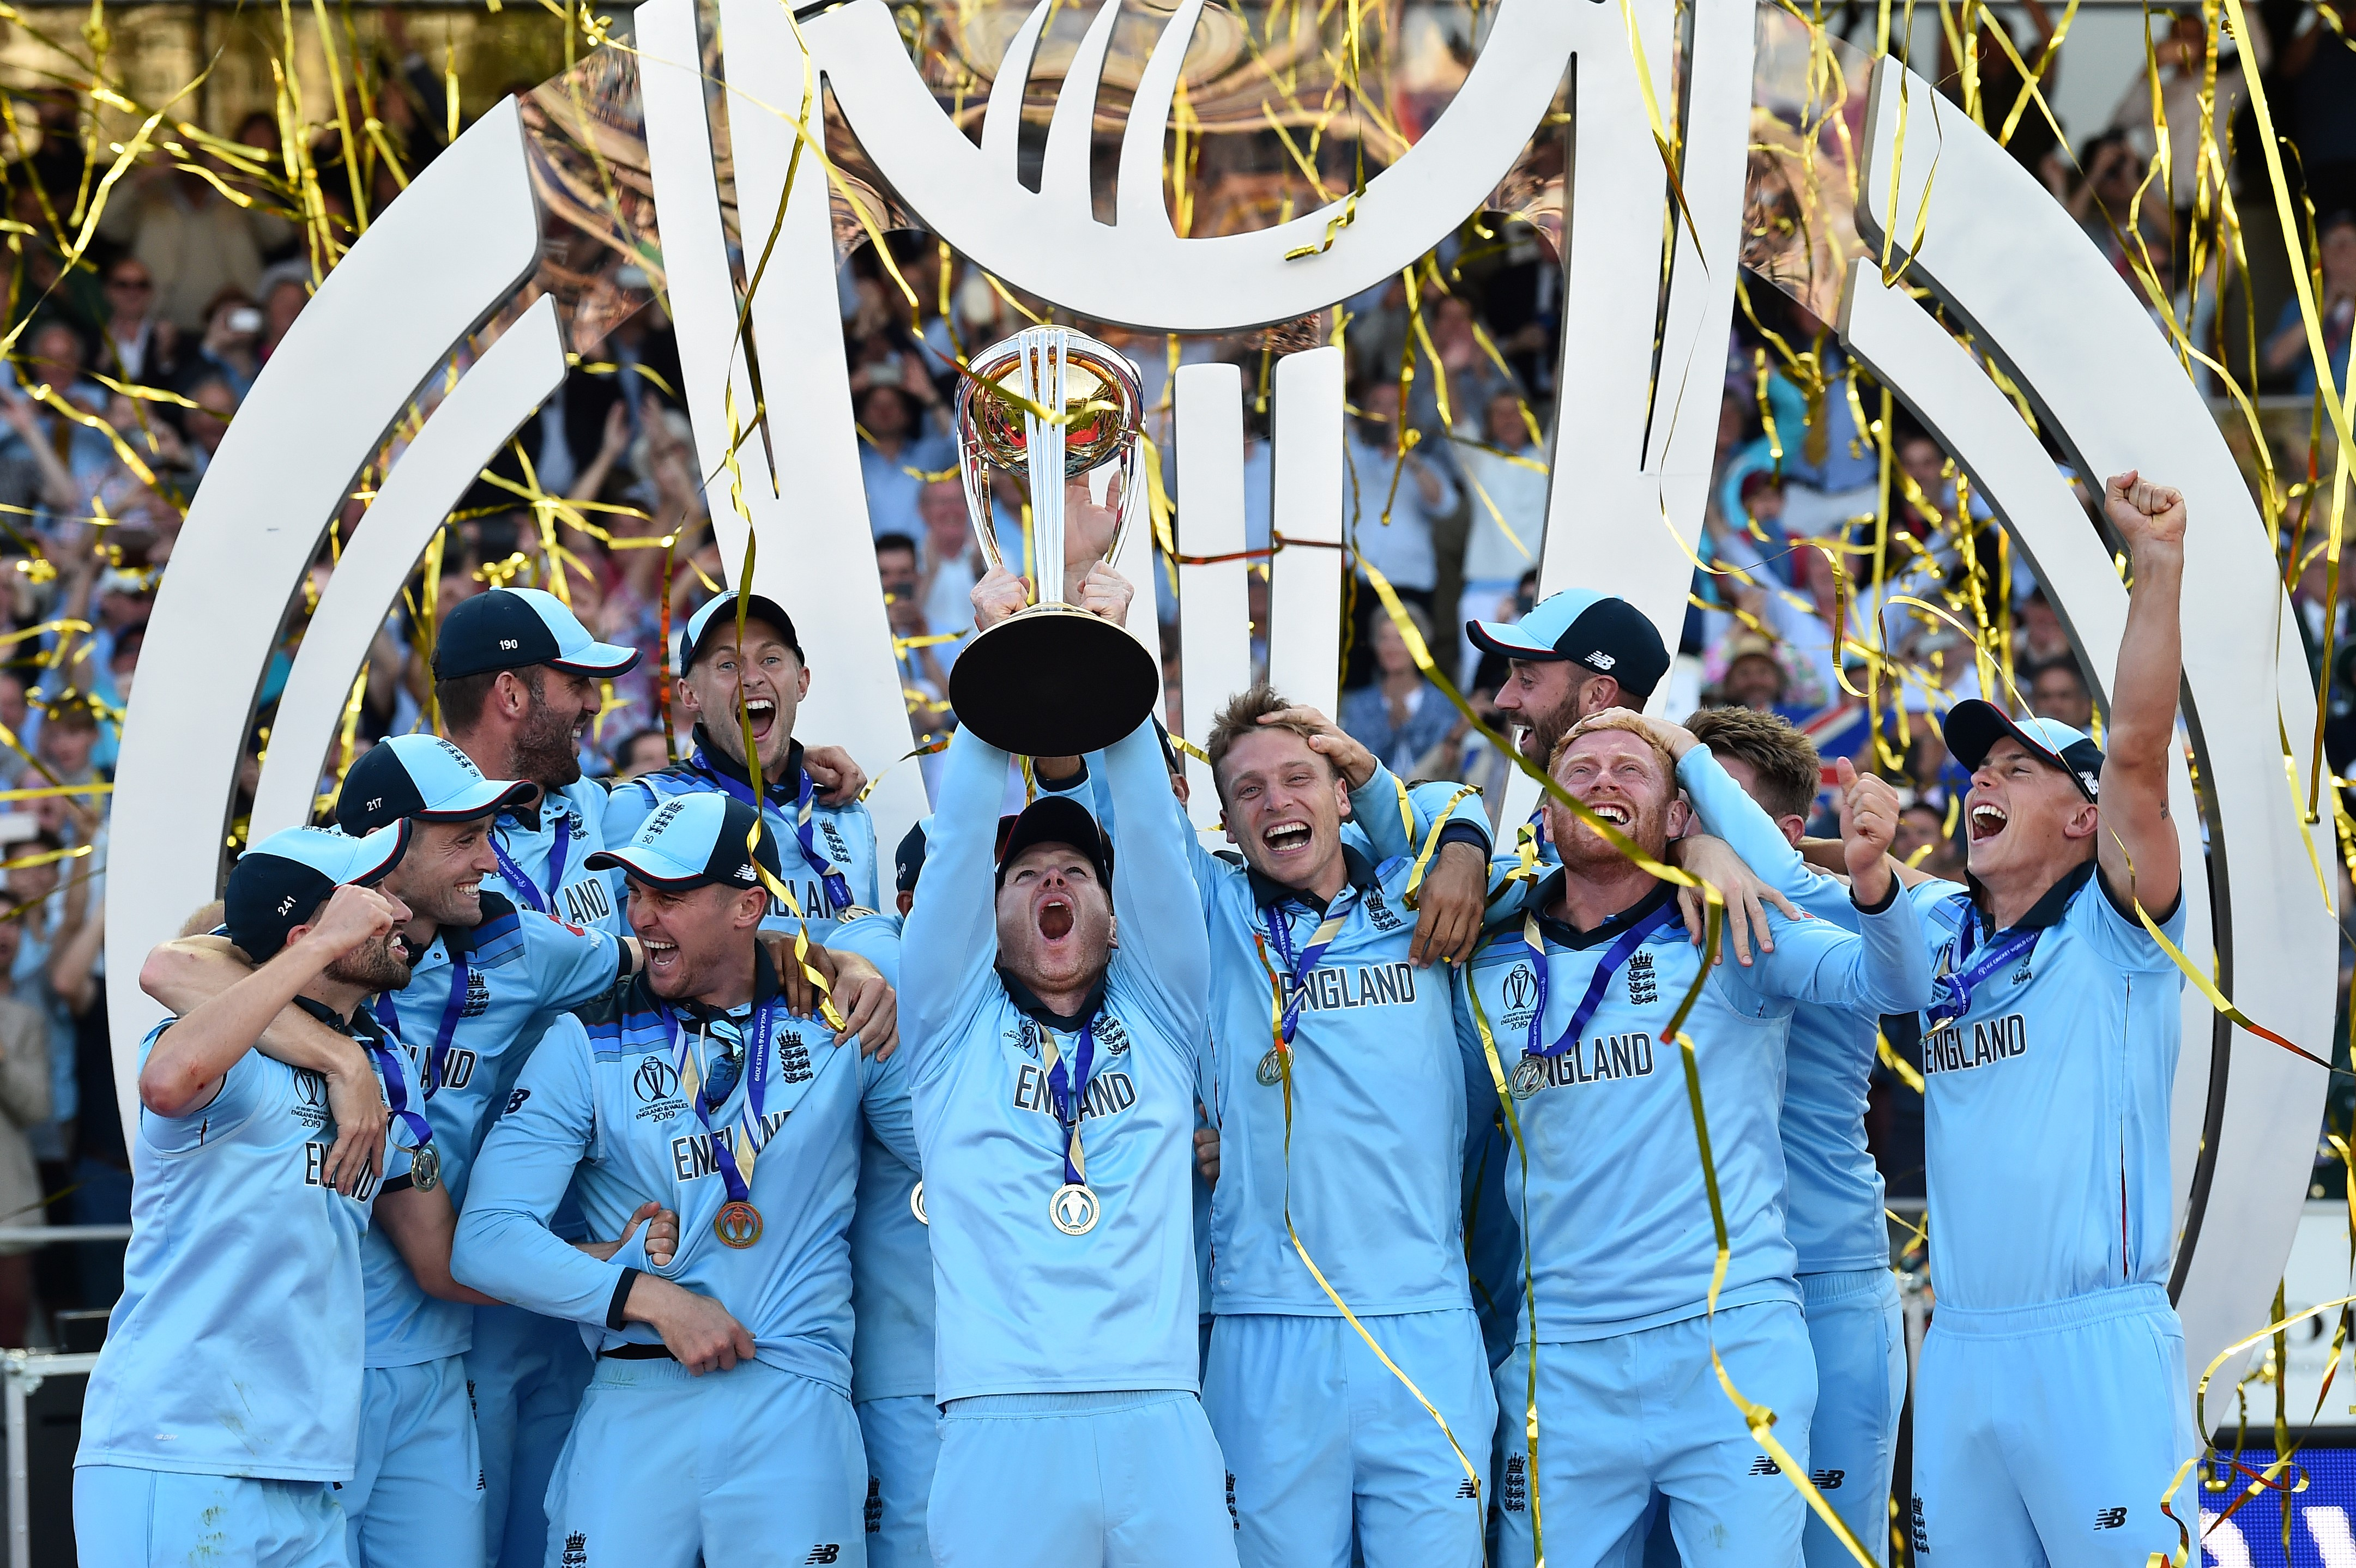 Test your cricket knowledge with our Cricket World Cup Quizzes